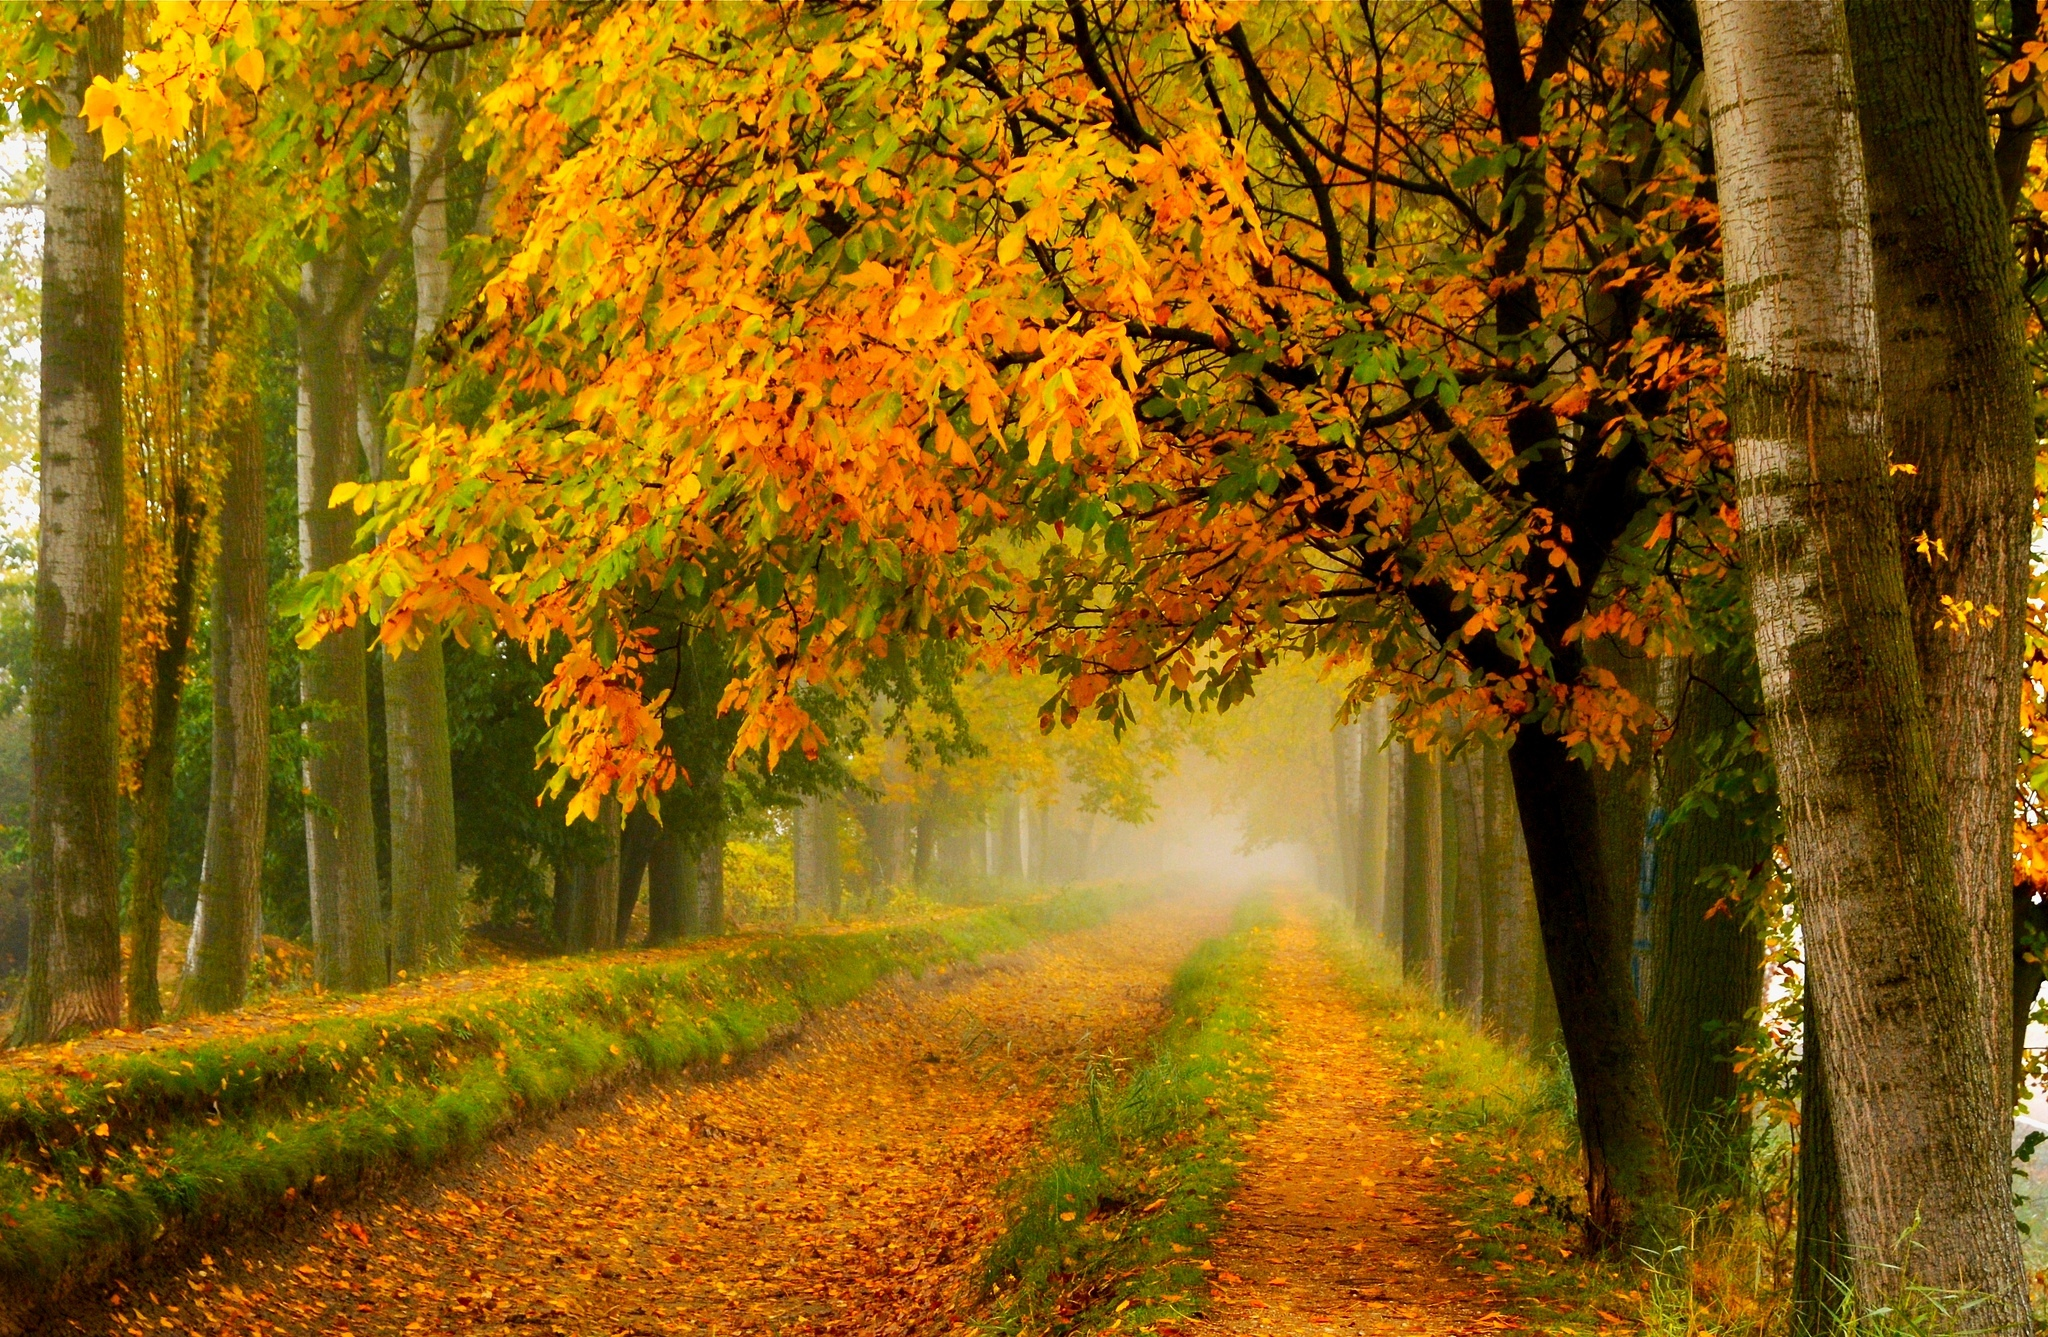 fall colors walk leaves autumn nature trees road forest park wallpaper ...